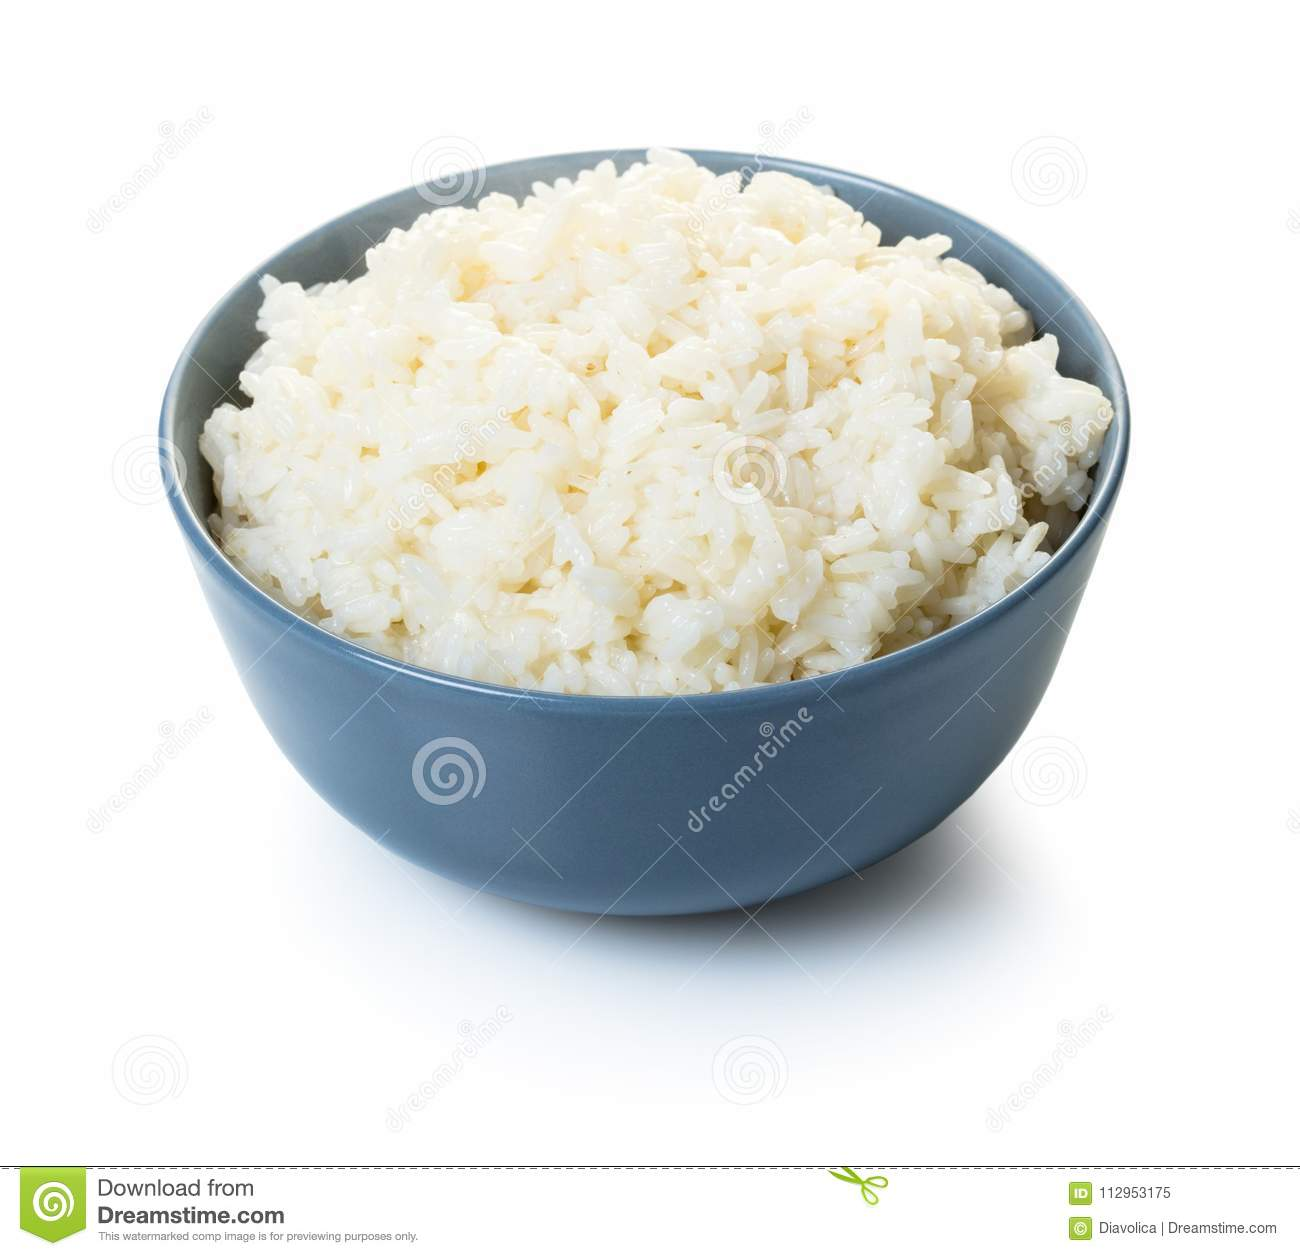 Cooked rice in a bowl